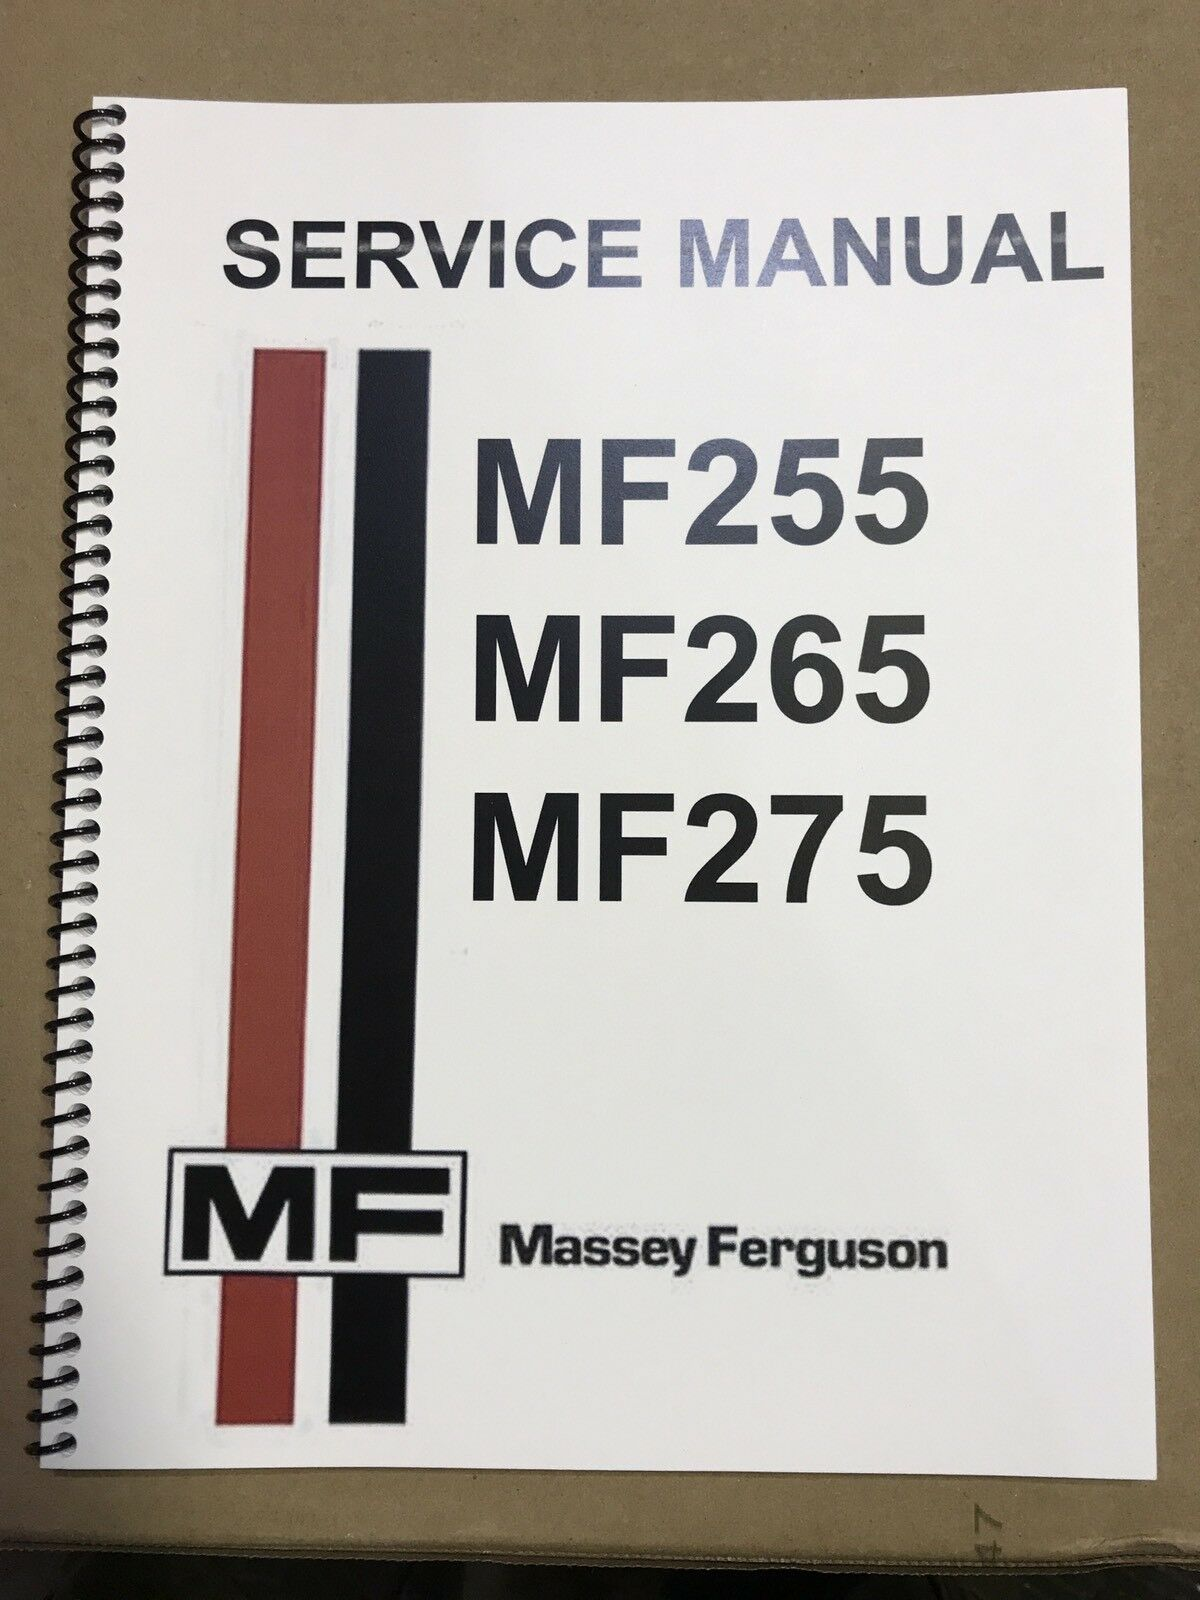 255 Massey Ferguson Tractor Technical Service Shop Repair Manual MF255 1 of  4Only 3 available ...